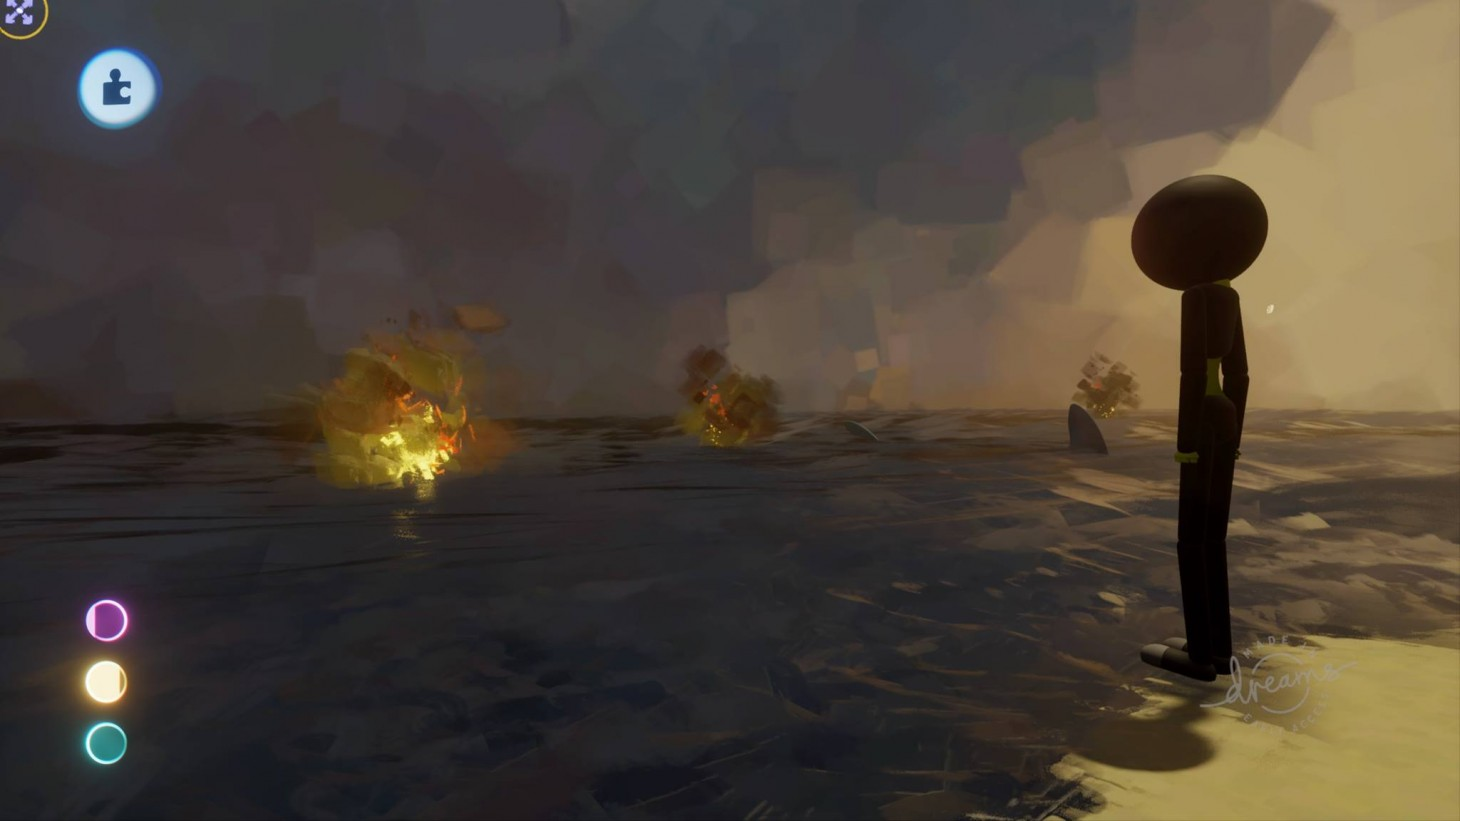 What Can You Make In Dreams After A Week? - Game Informer